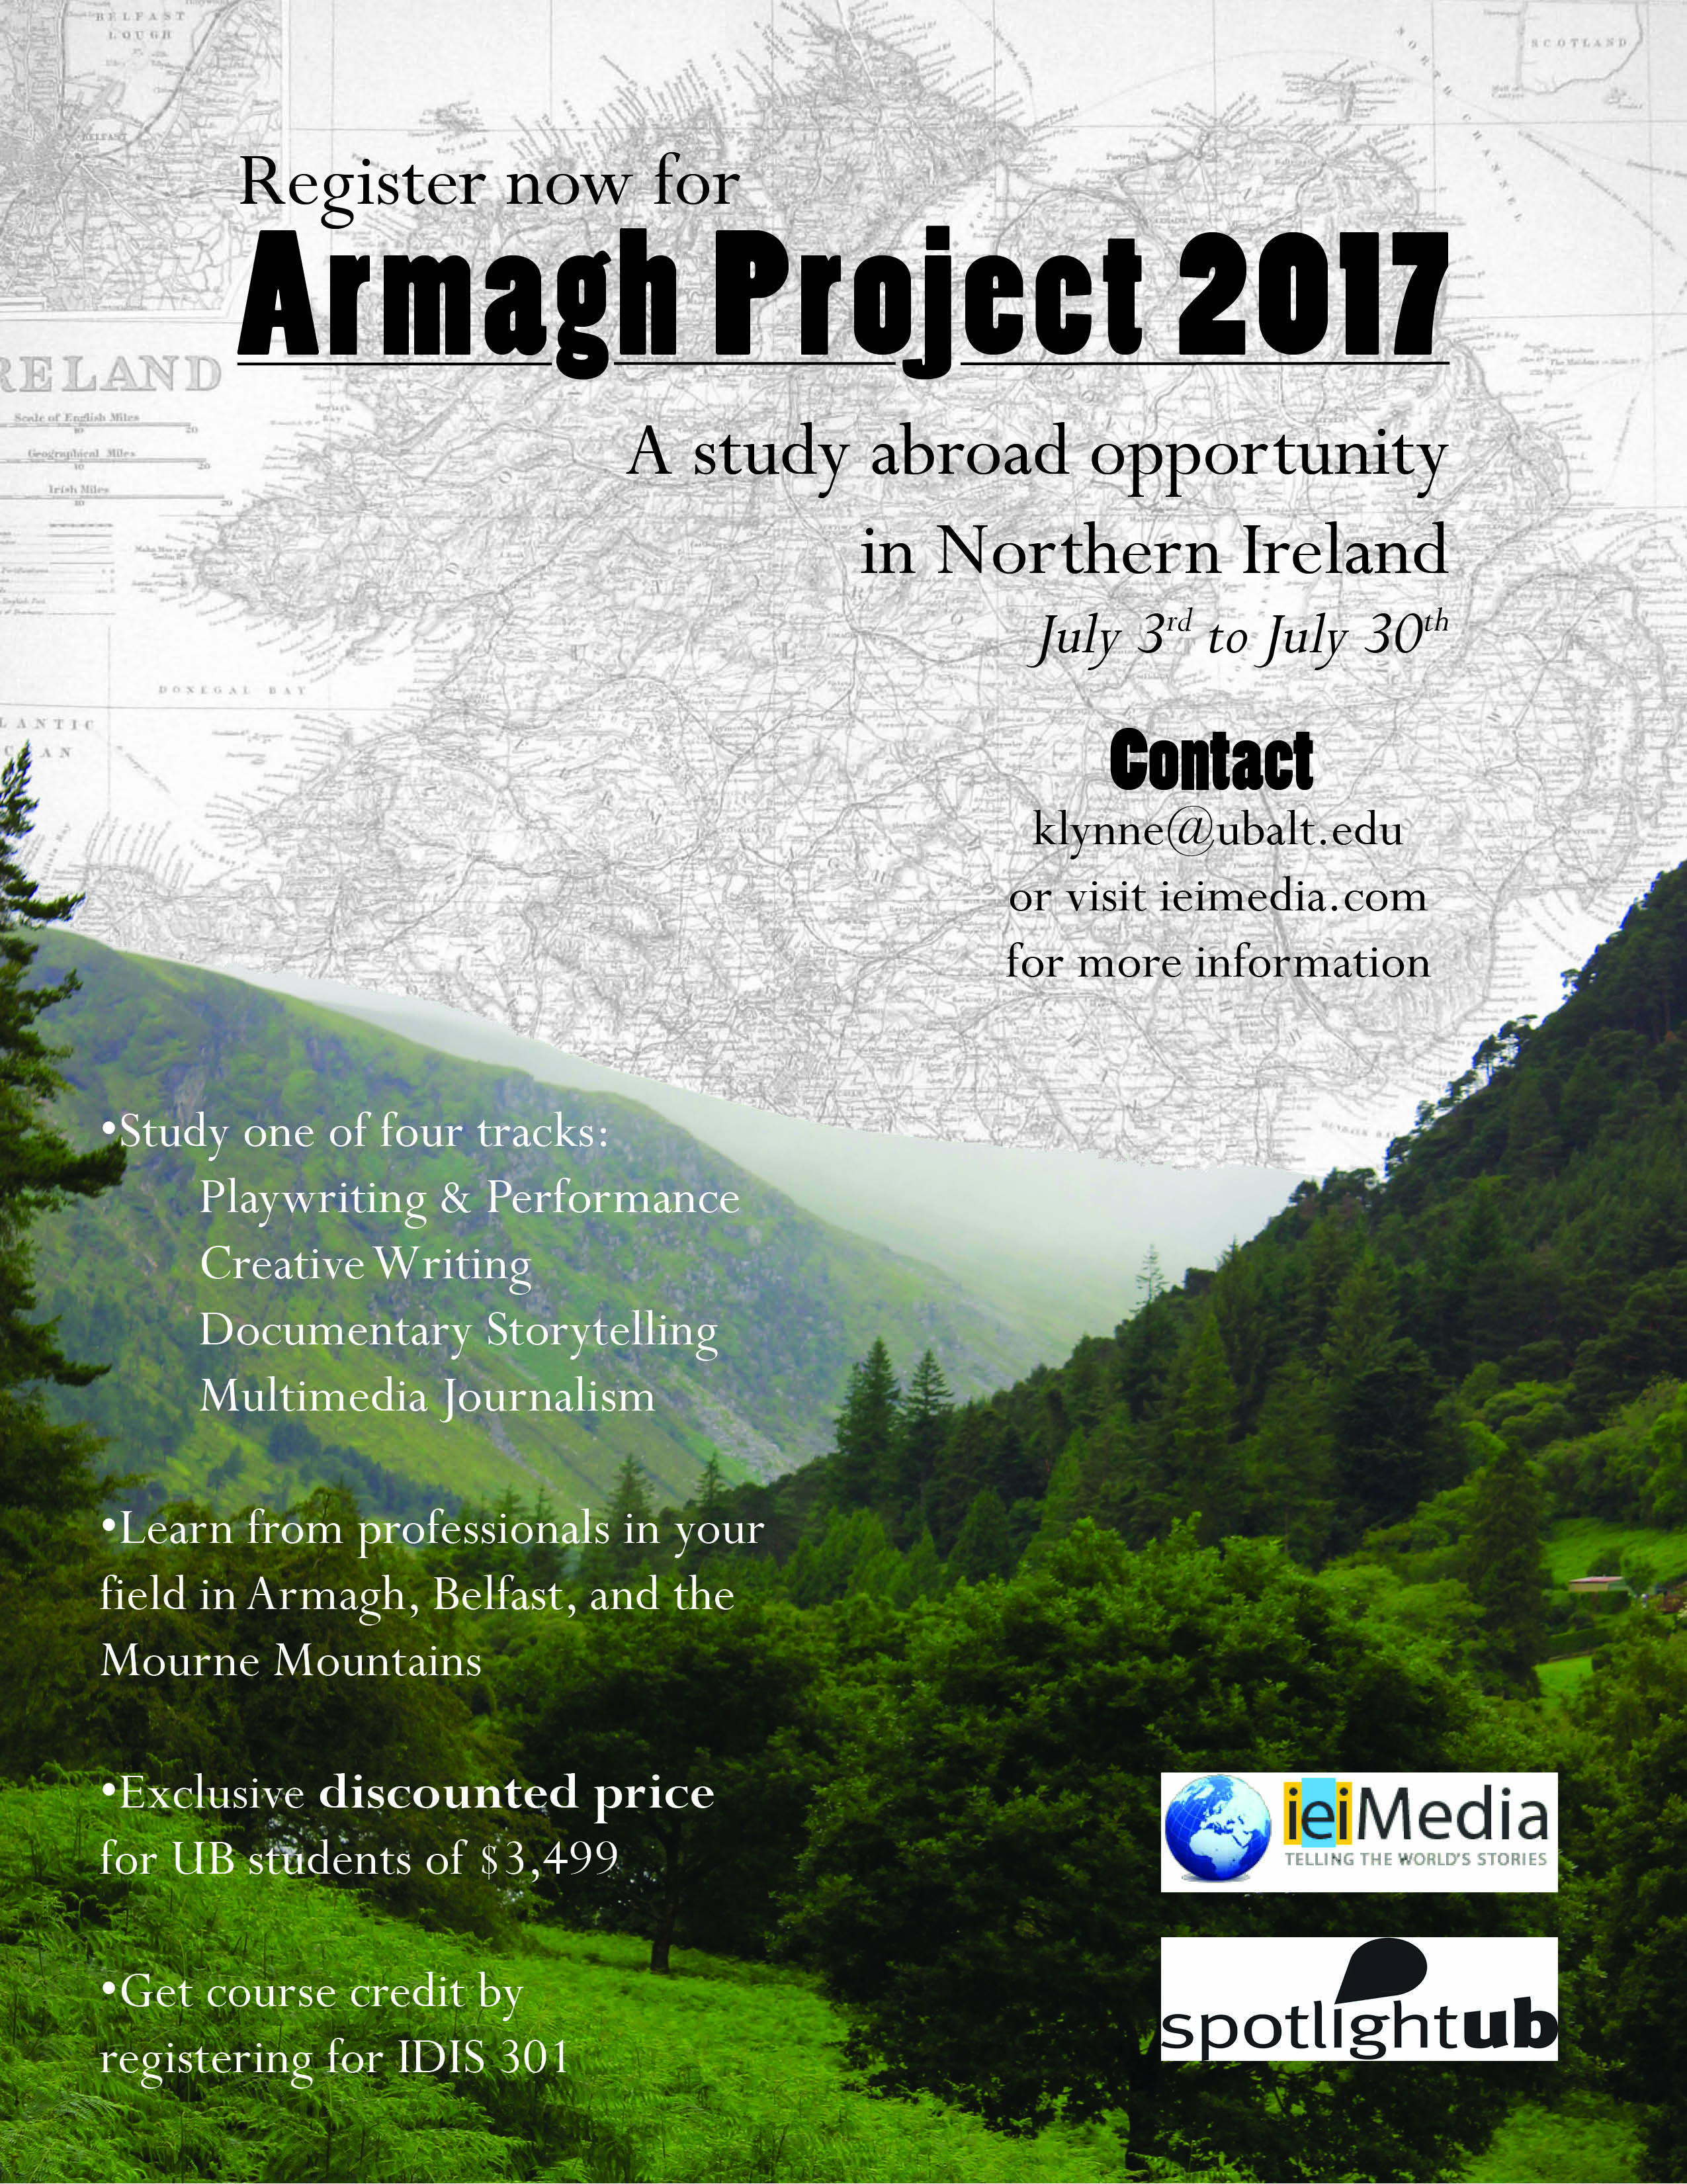 Armagh Project 2017 Interest Meeting